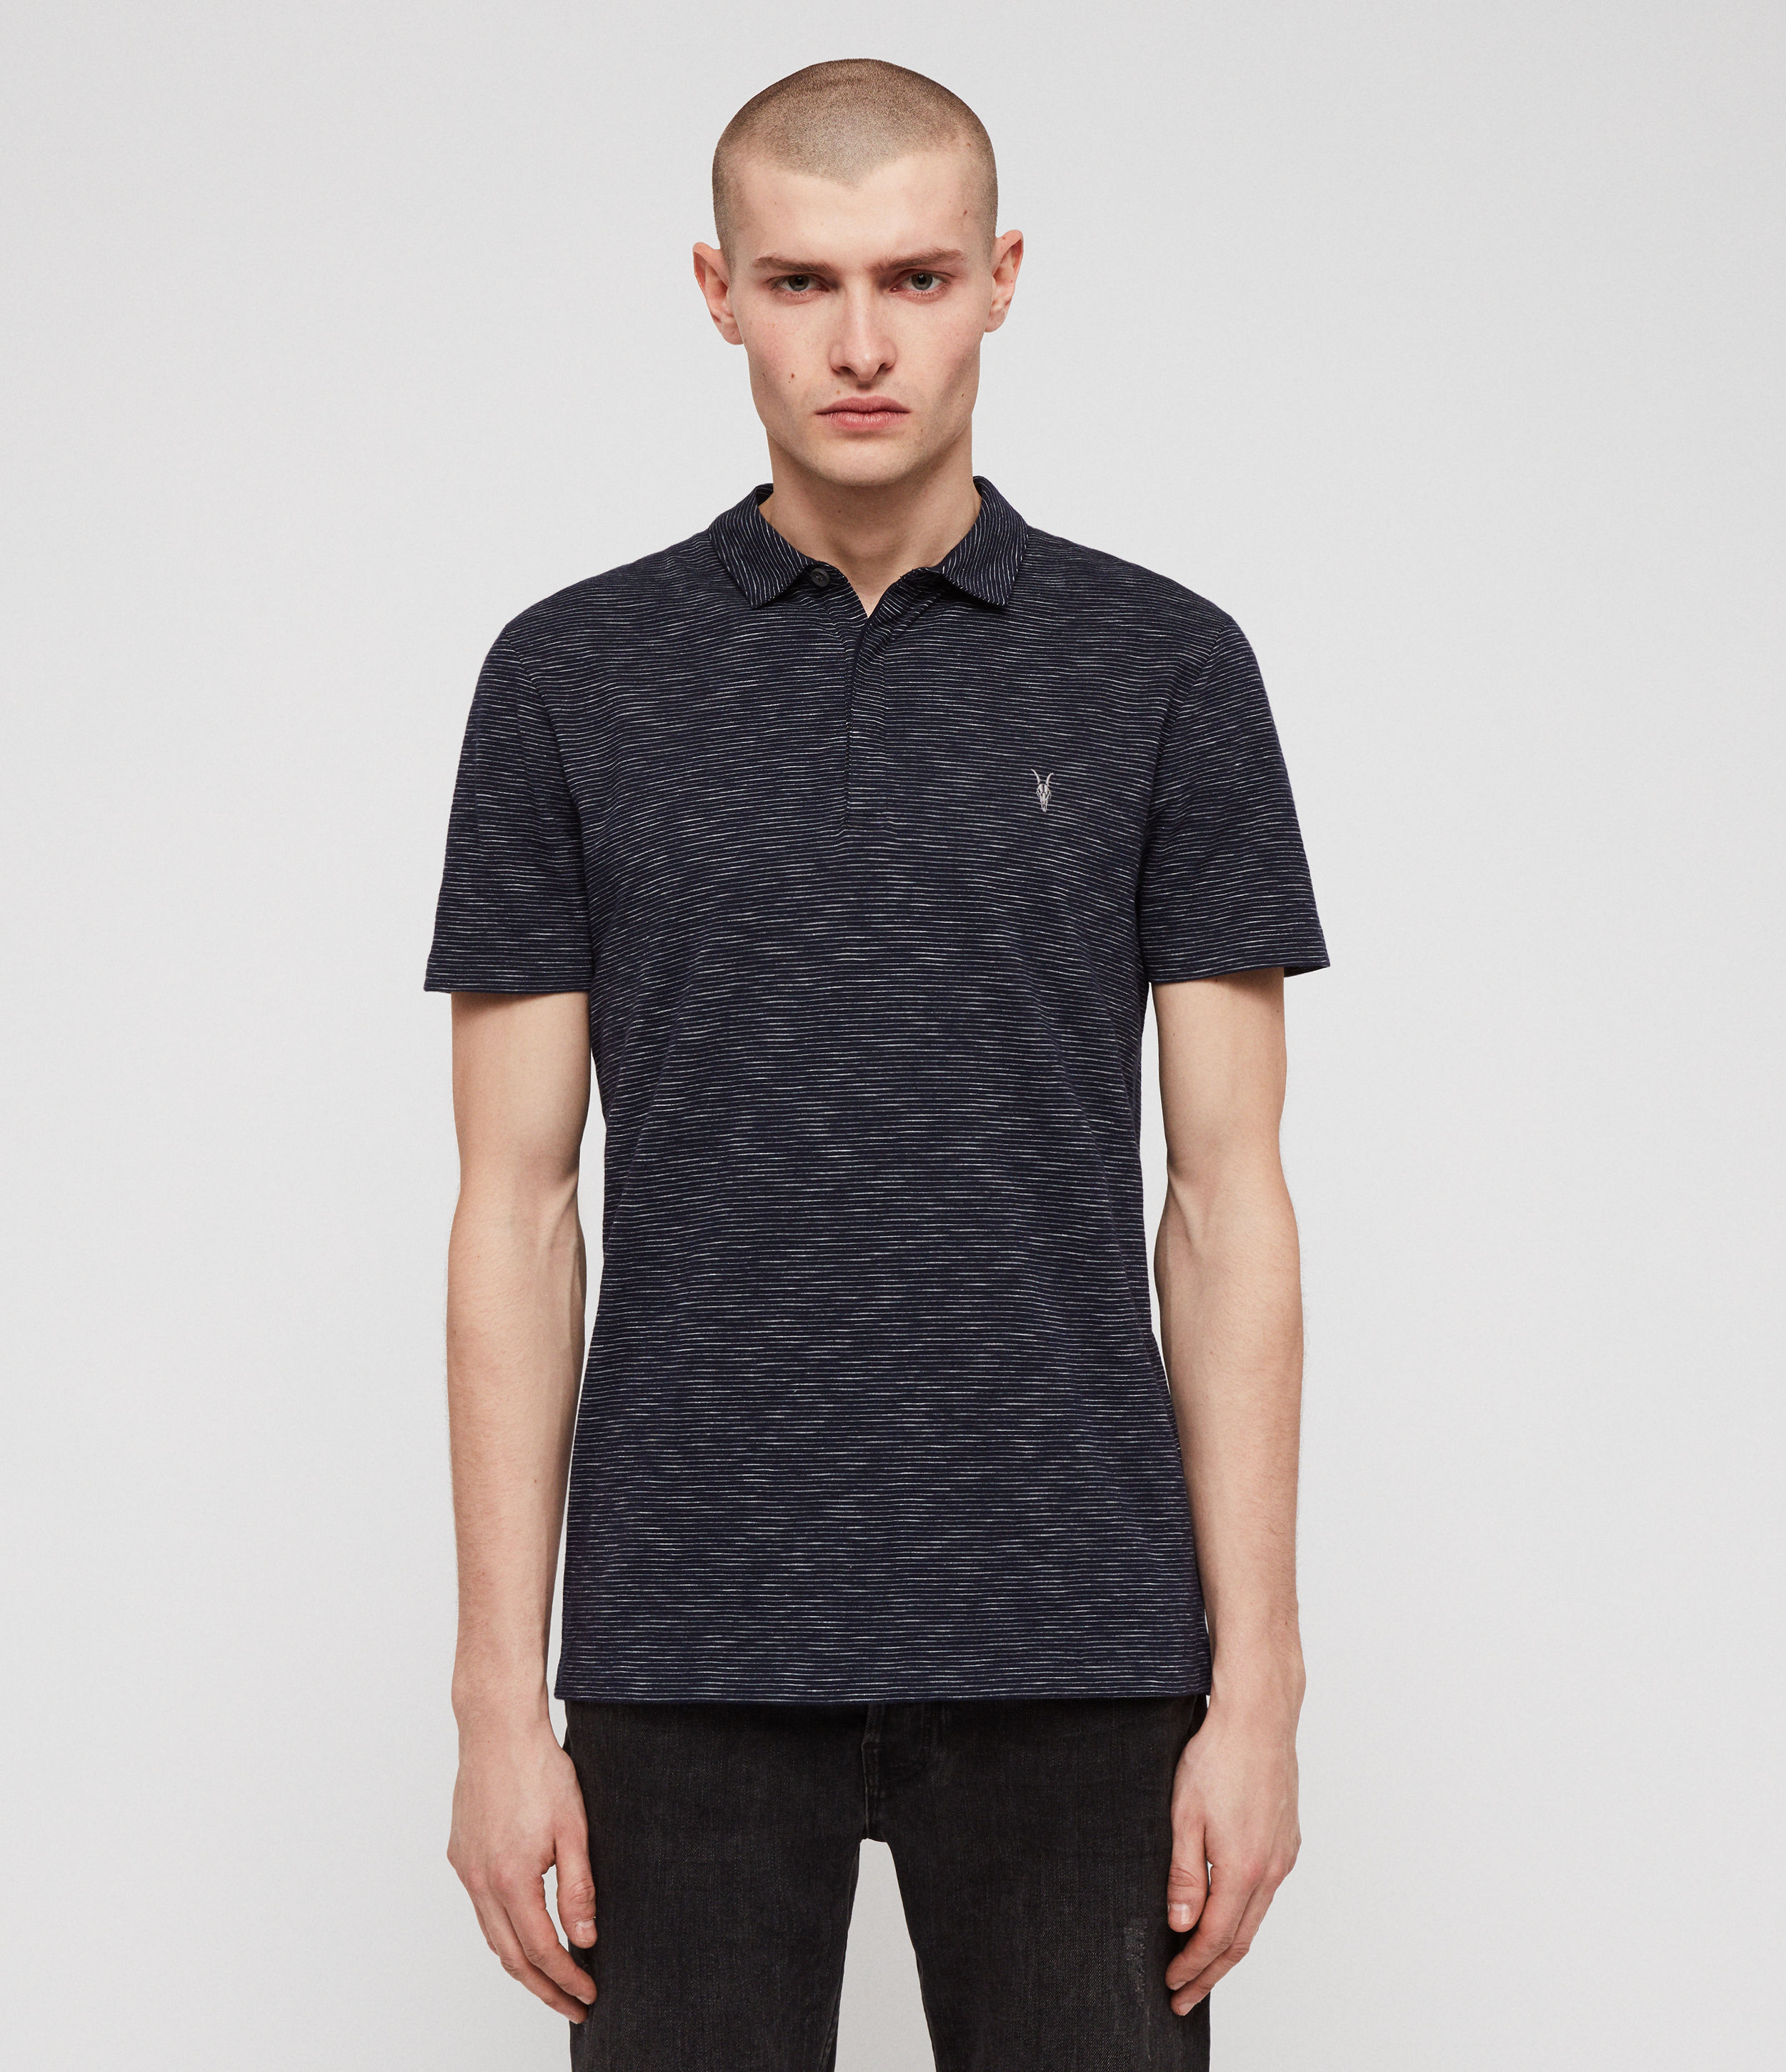 AllSaints Mens Cohen Short Sleeve Polo Shirt, Navy Blue and White, Size: S